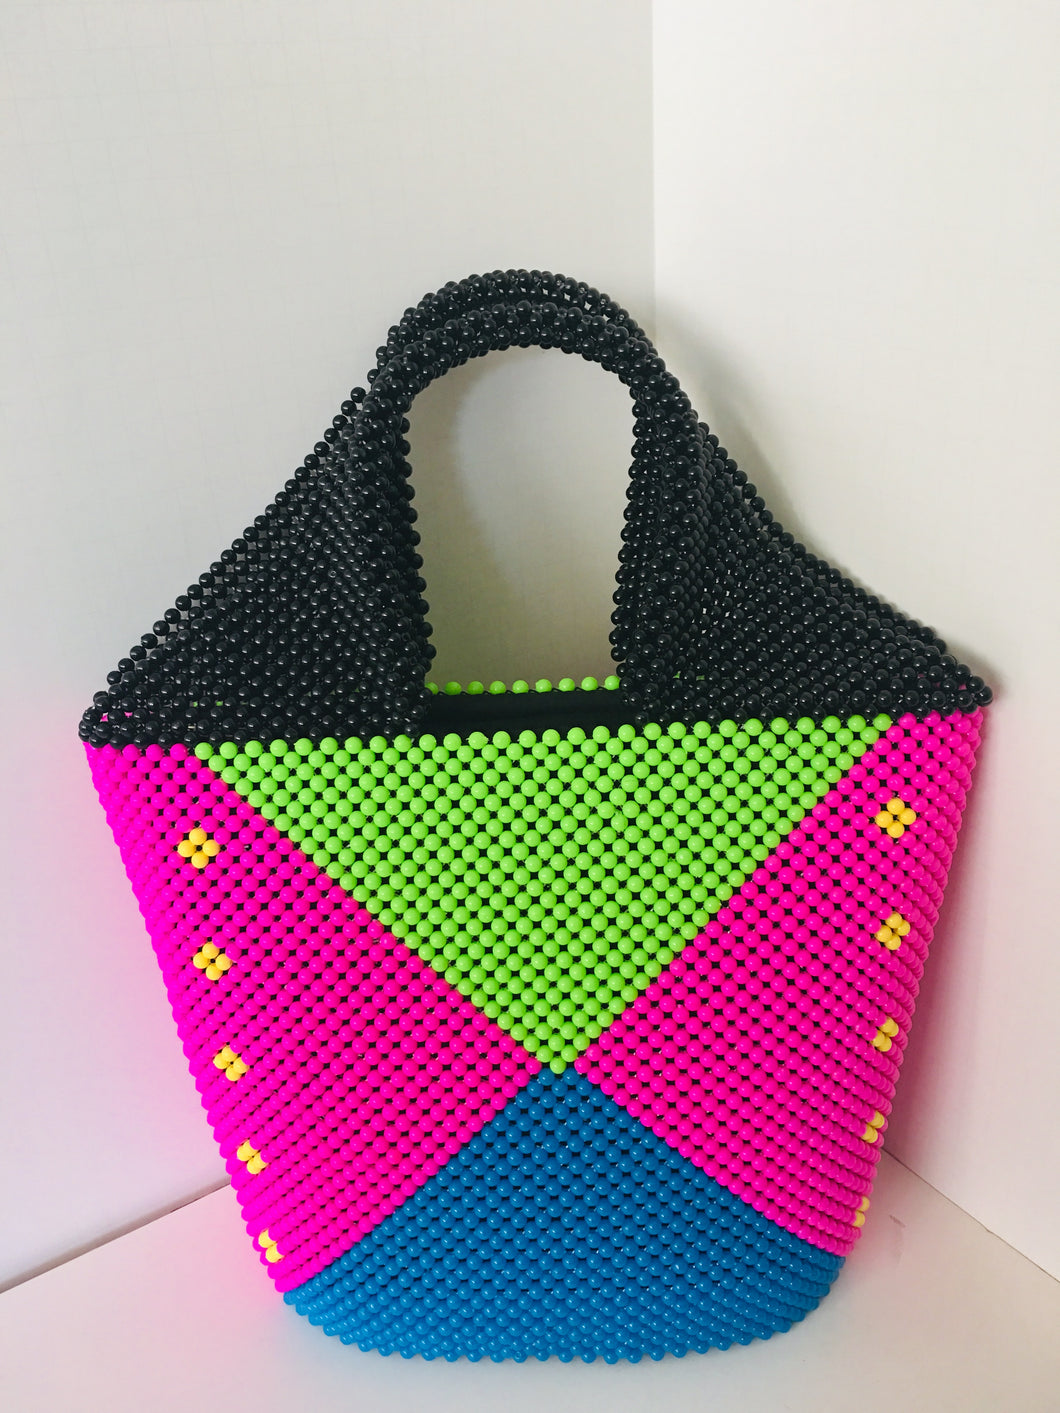 Lime Green, pink and Blue with black Handles,Handcrafted Beaded Handbag.